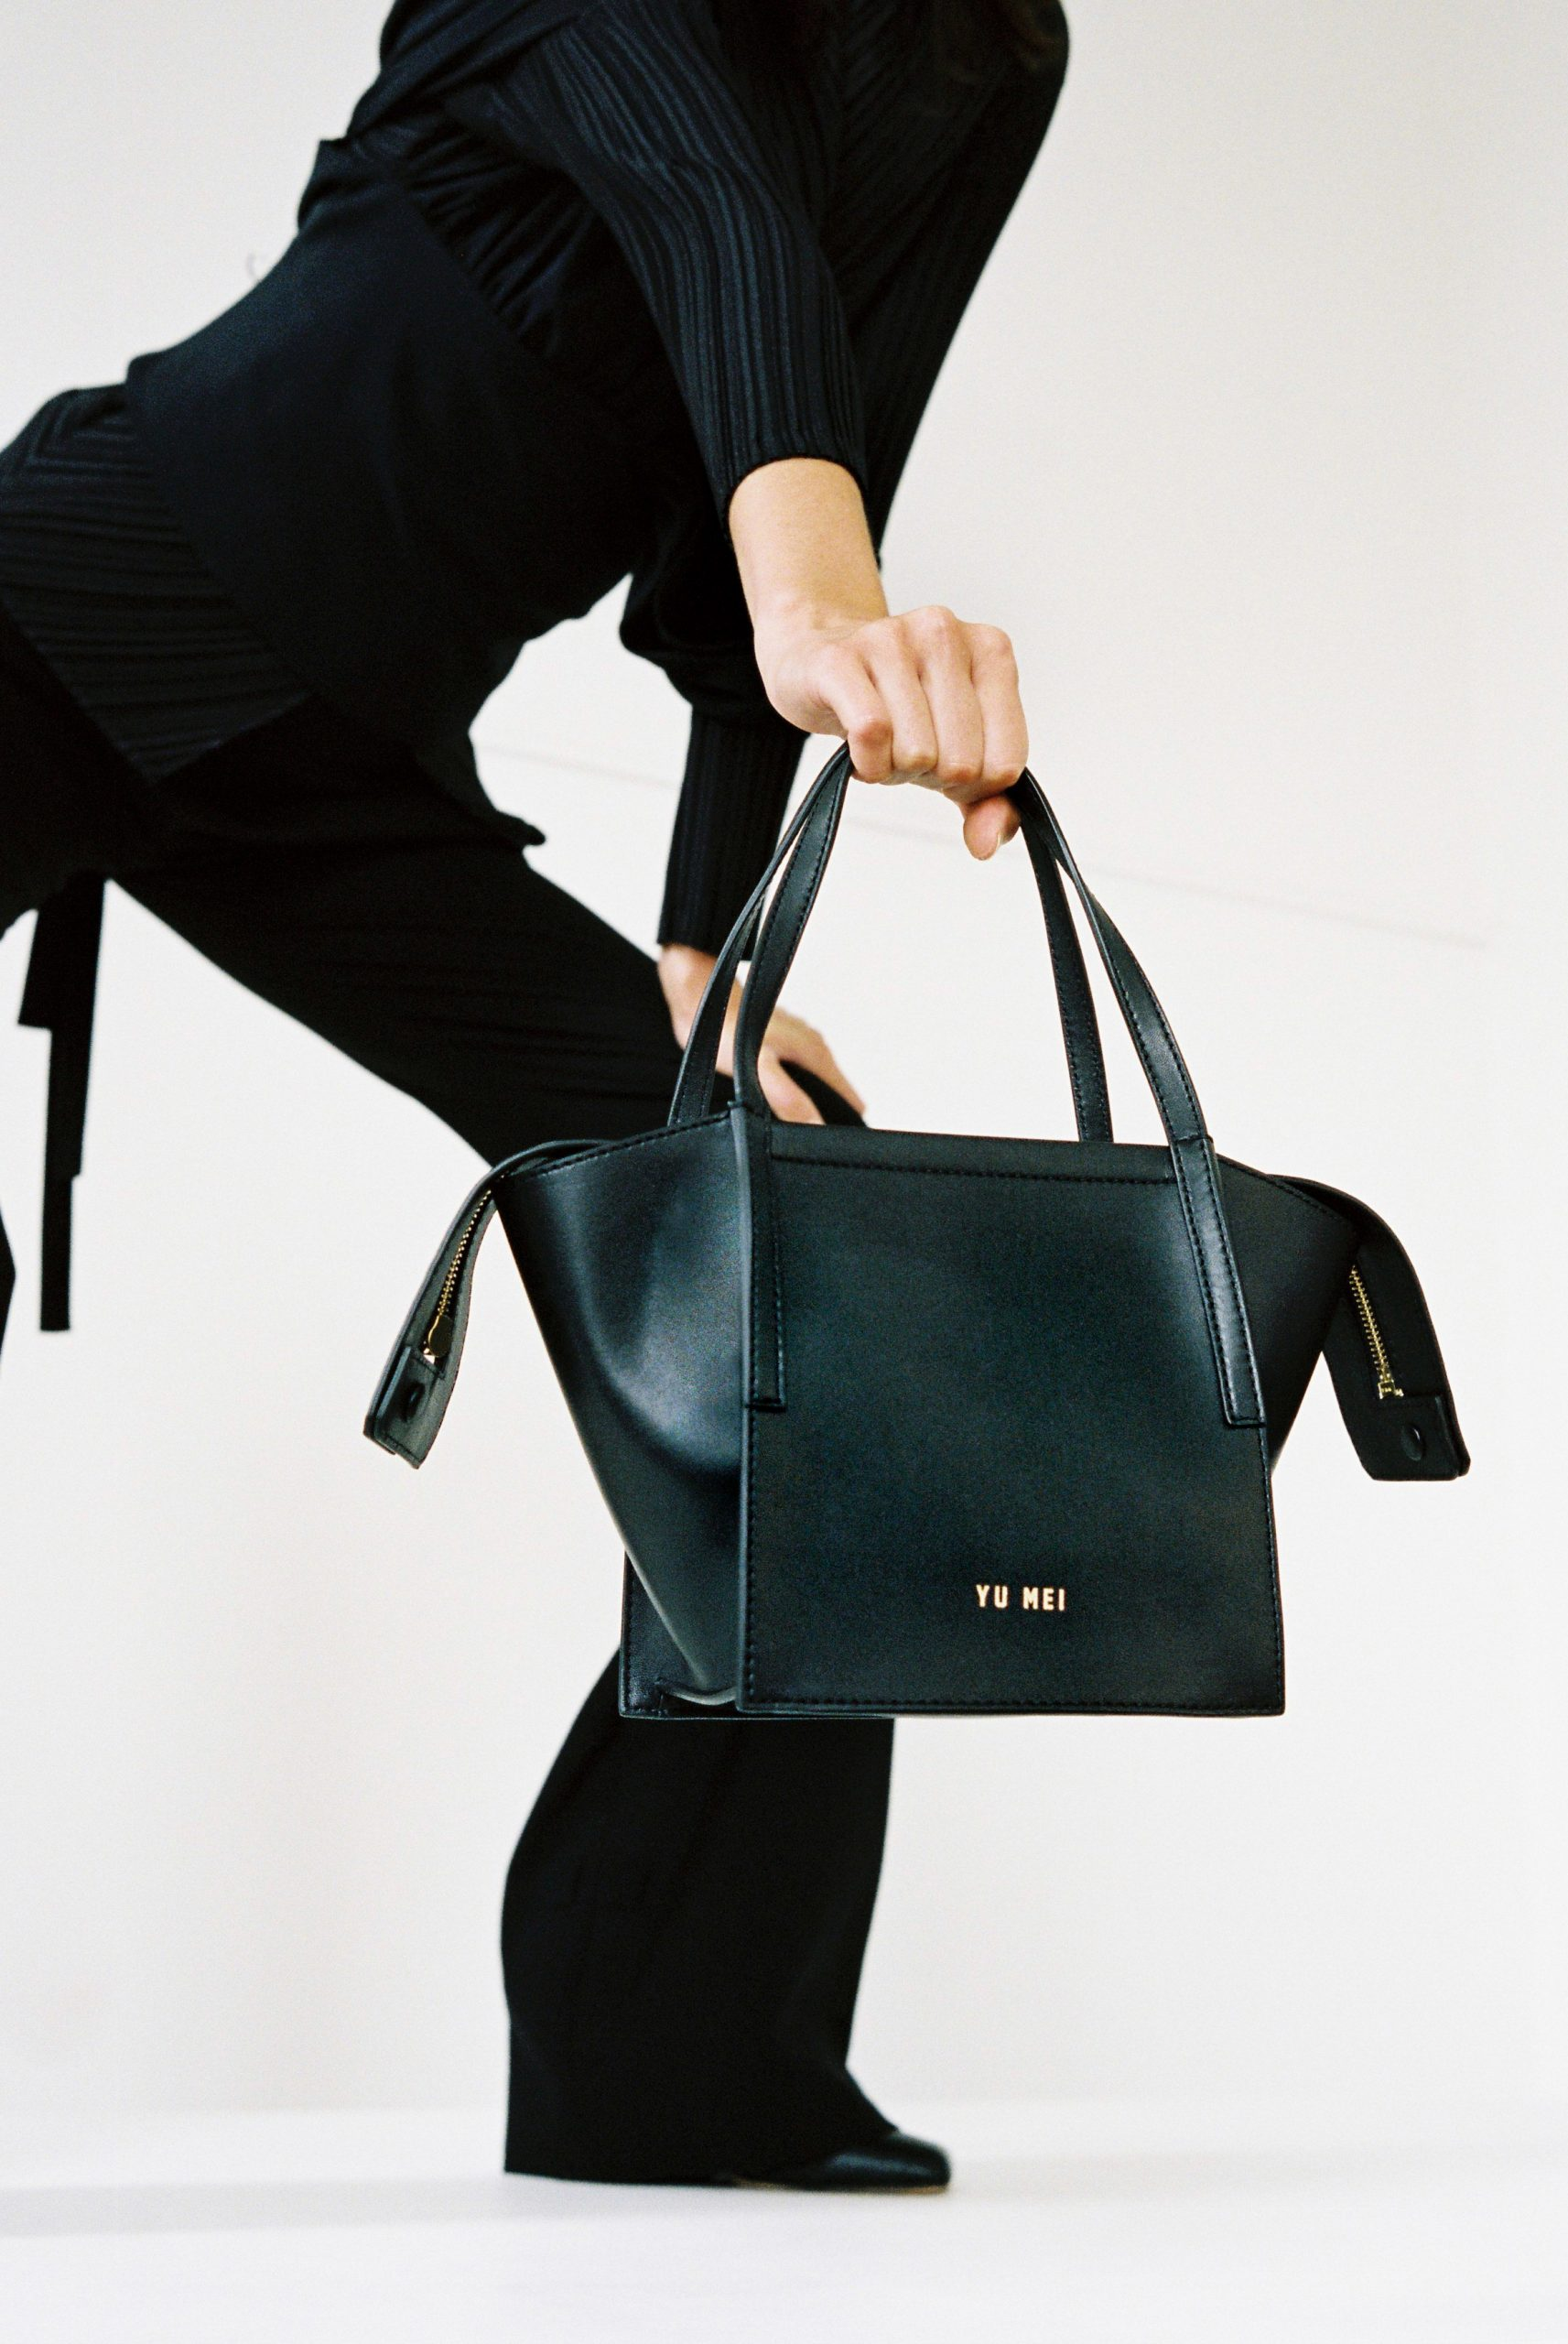 Summer 20 - Black Lamb Milly bag